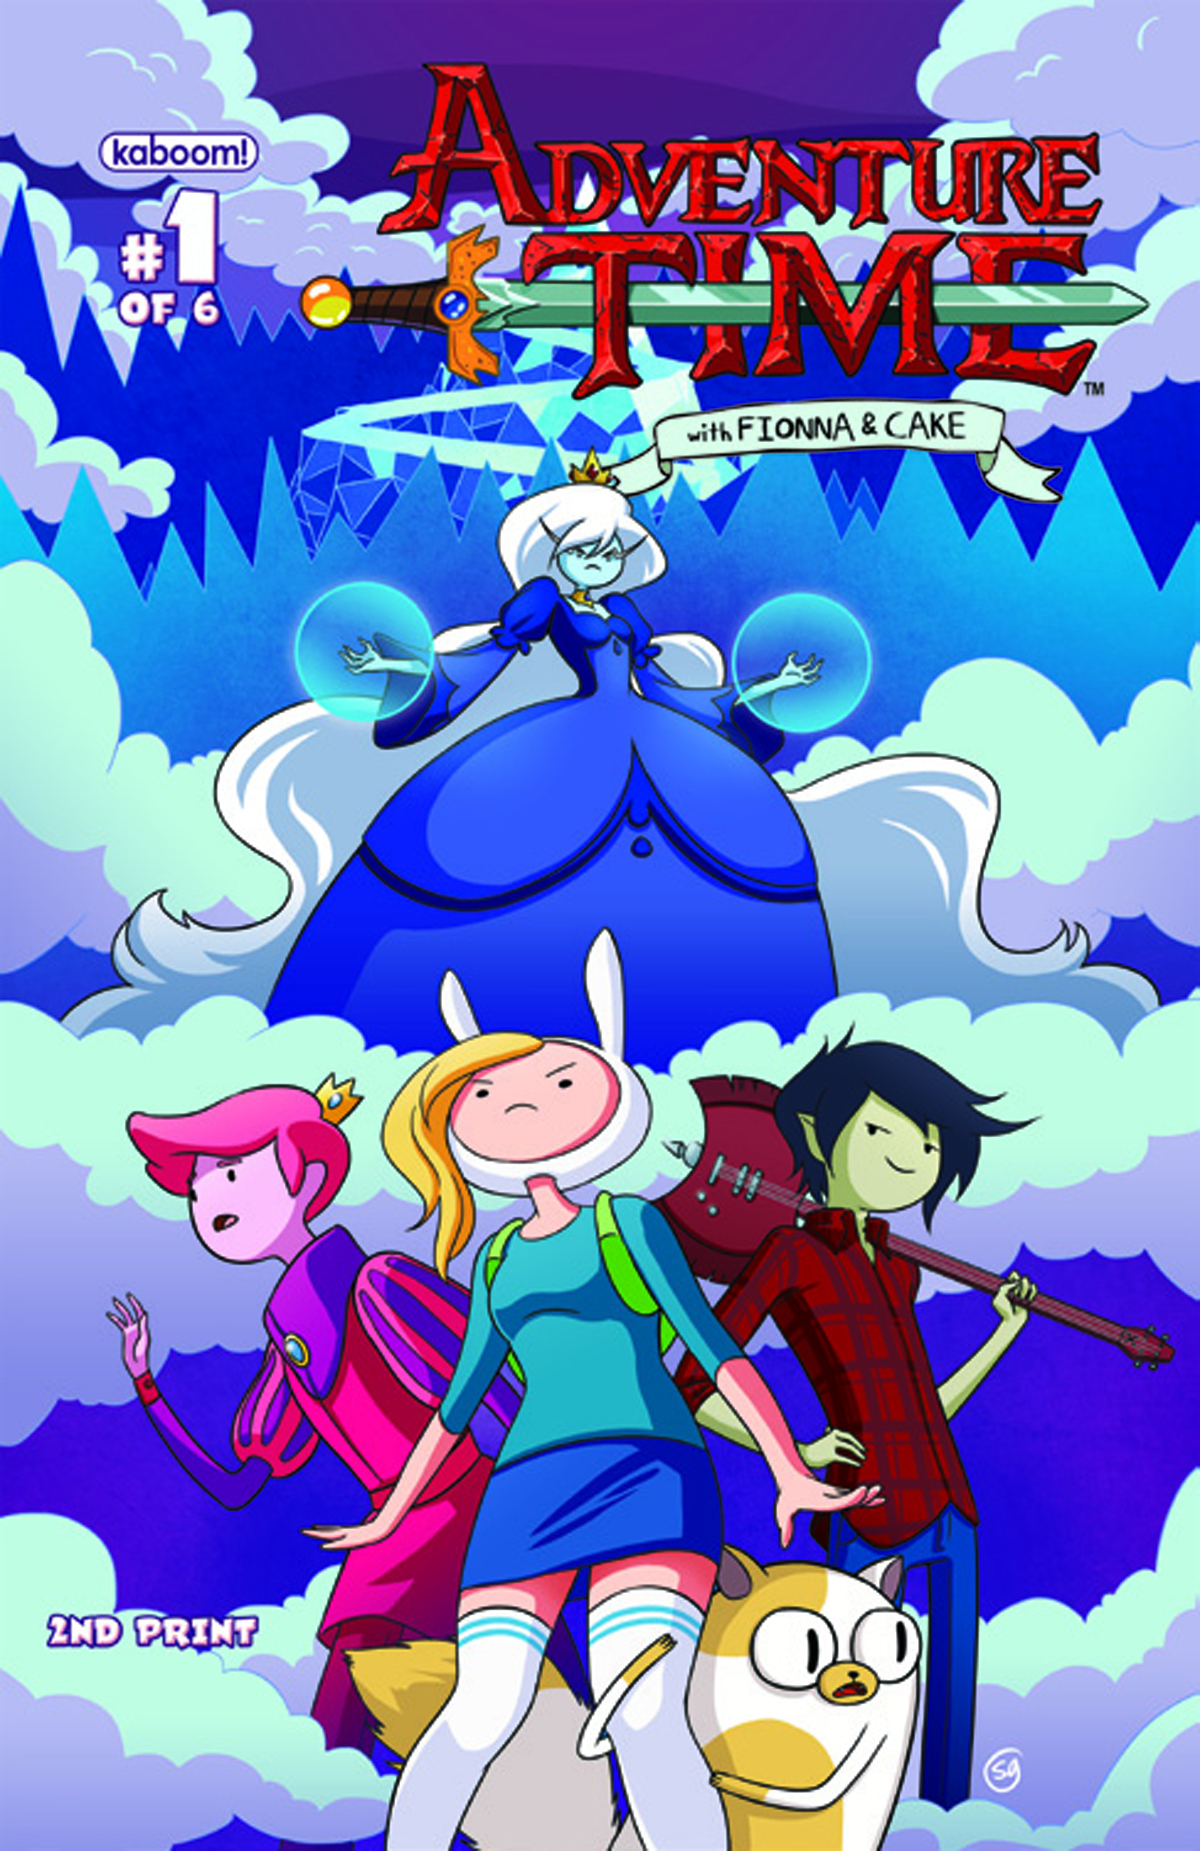 ADVENTURE TIME FIONNA & CAKE #1 (OF 6) 2ND PTG